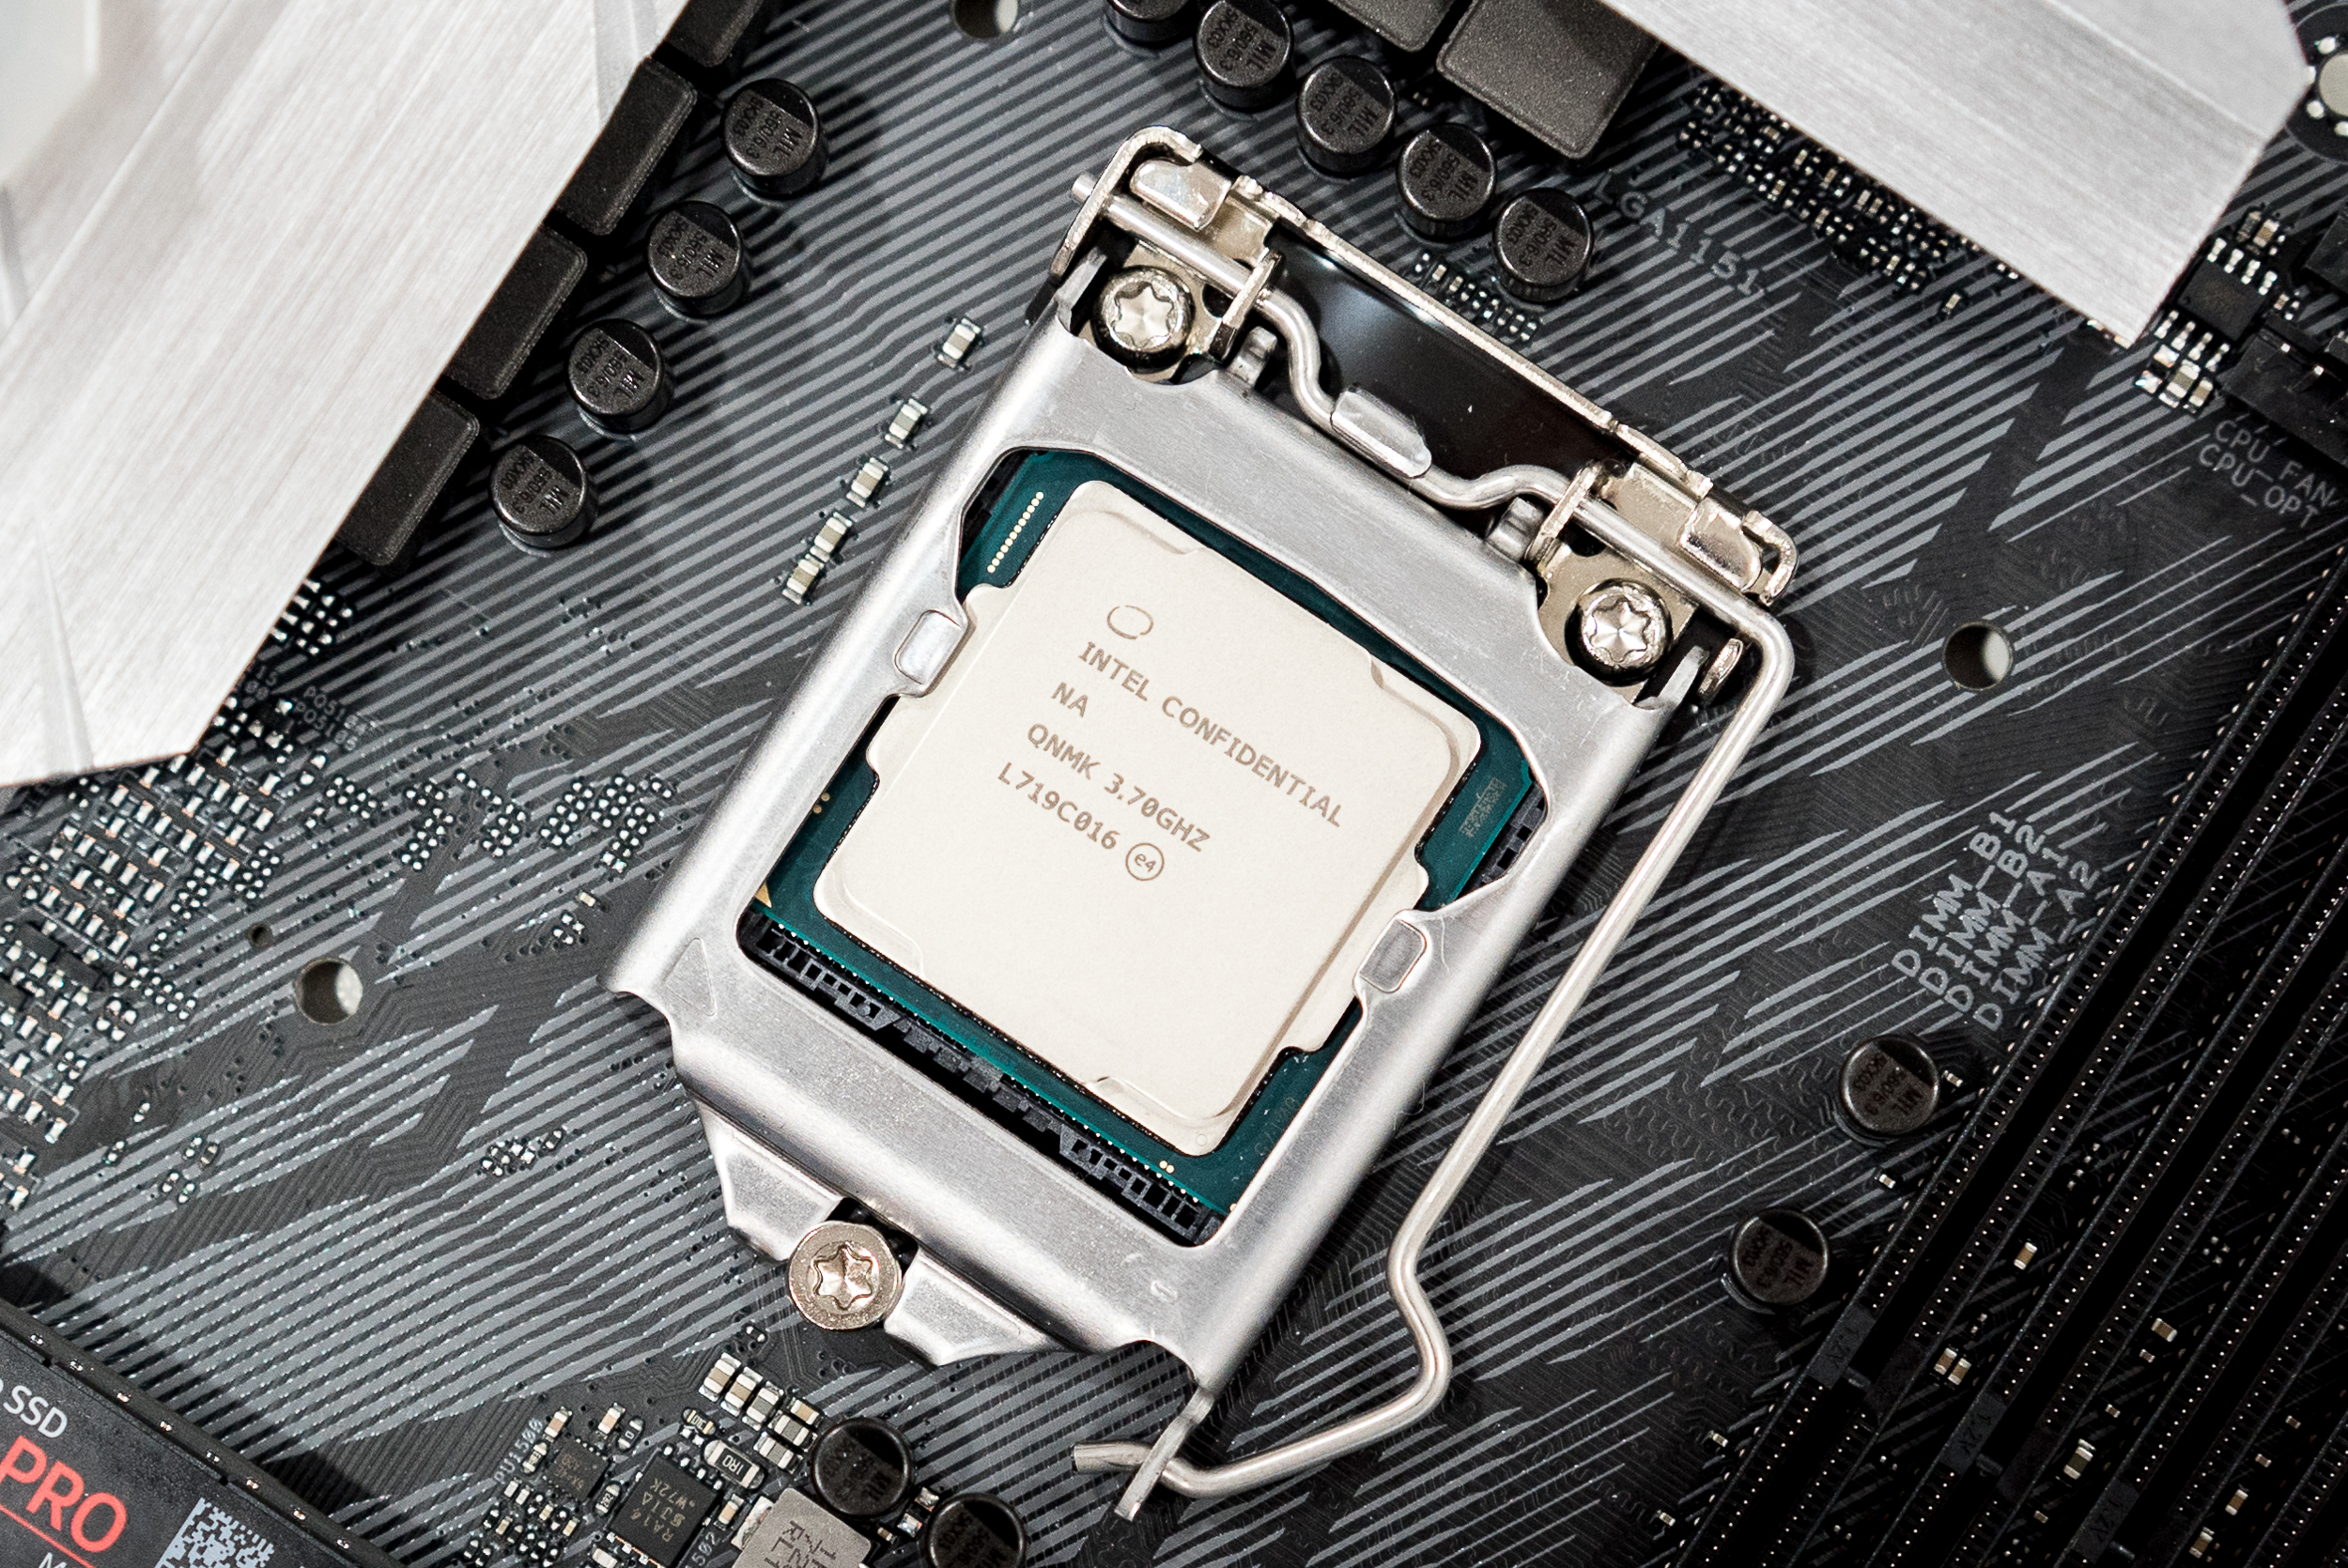 Intel Coffee Lake Core i7-8700K review: The best gaming CPU you can